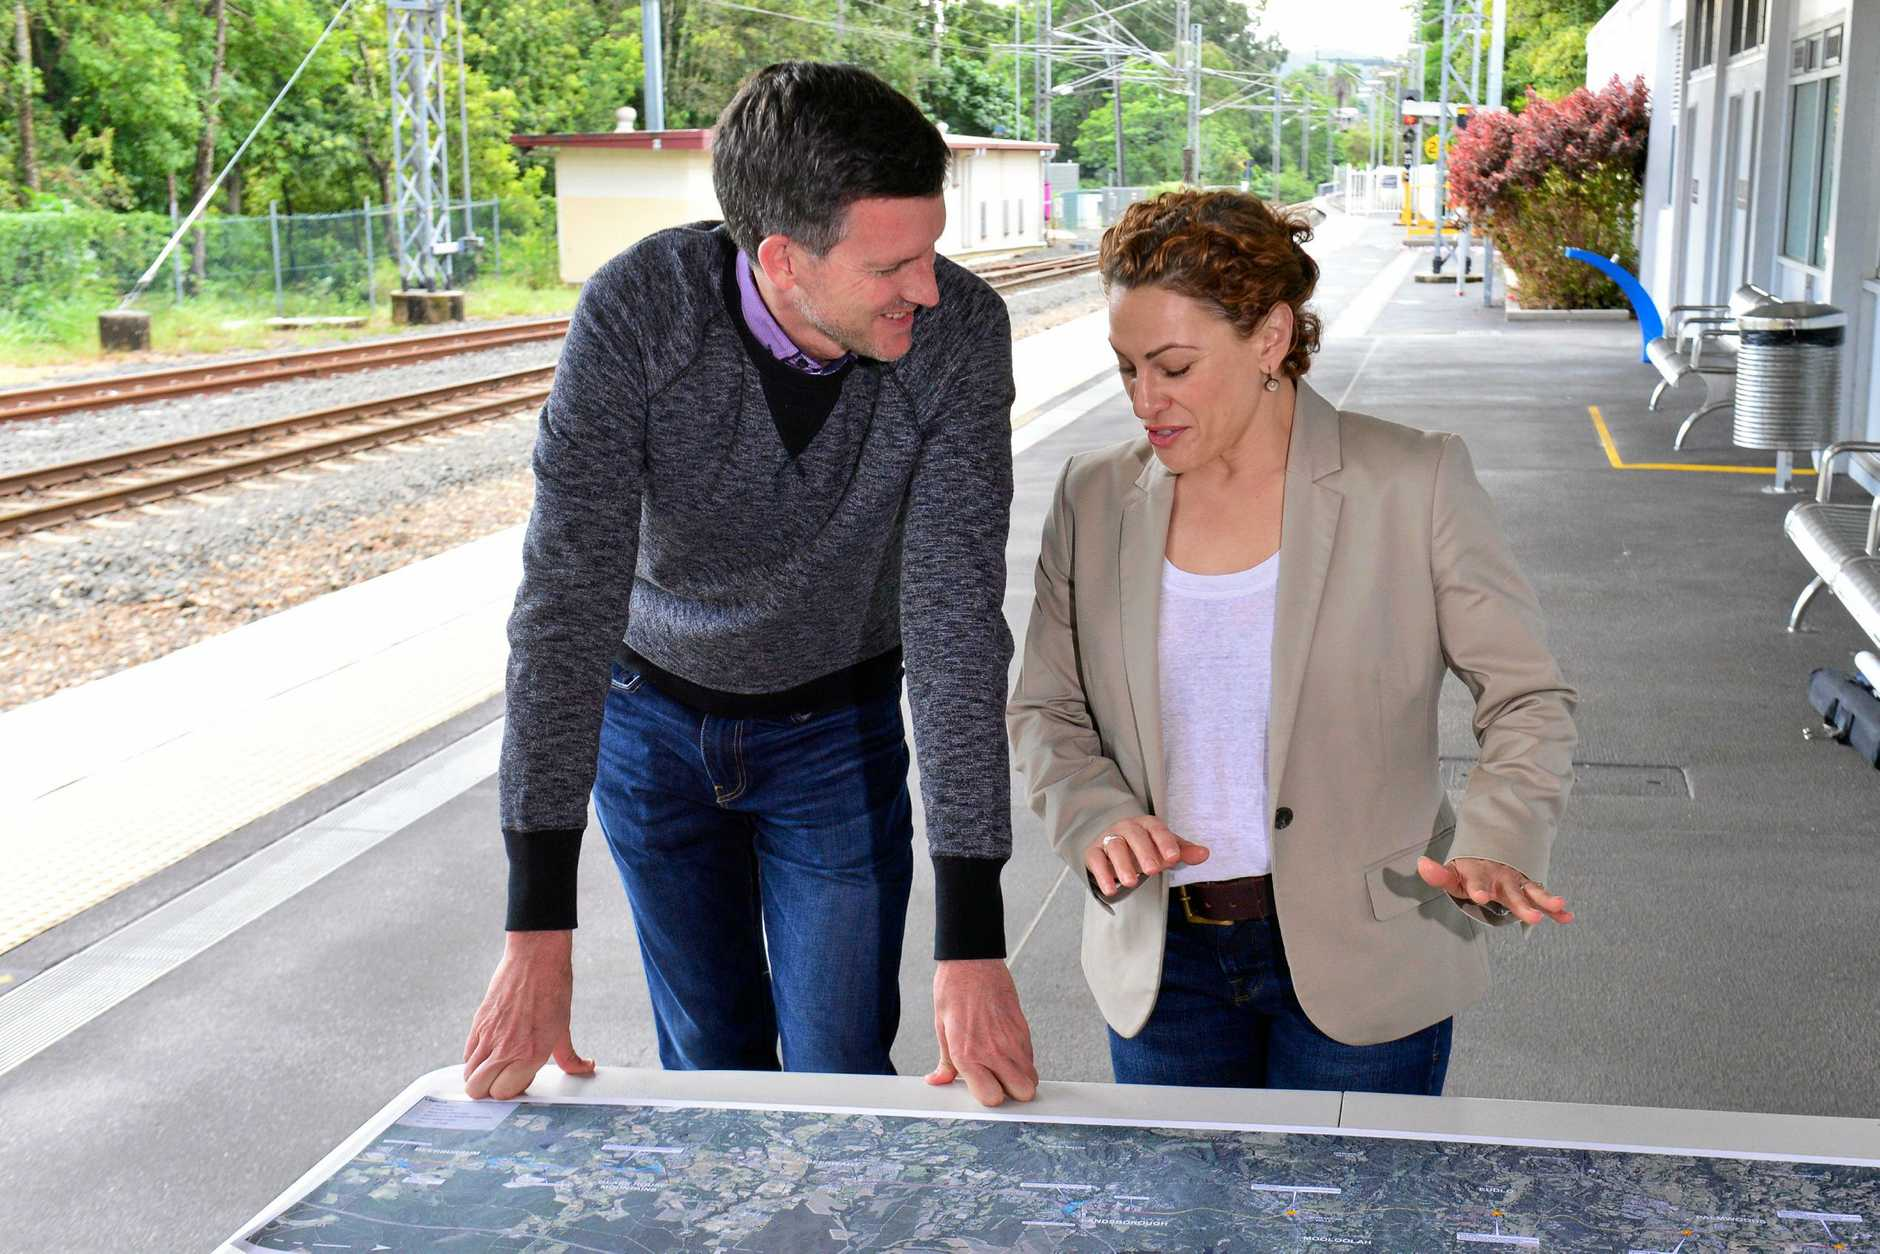 Deputy Premier Jackie Trad and Minister for Transport and Main Roads Mark Bailey in Nambour to announce a $160 million State Government commitment to rail duplication between Nambour and Beerburrum.